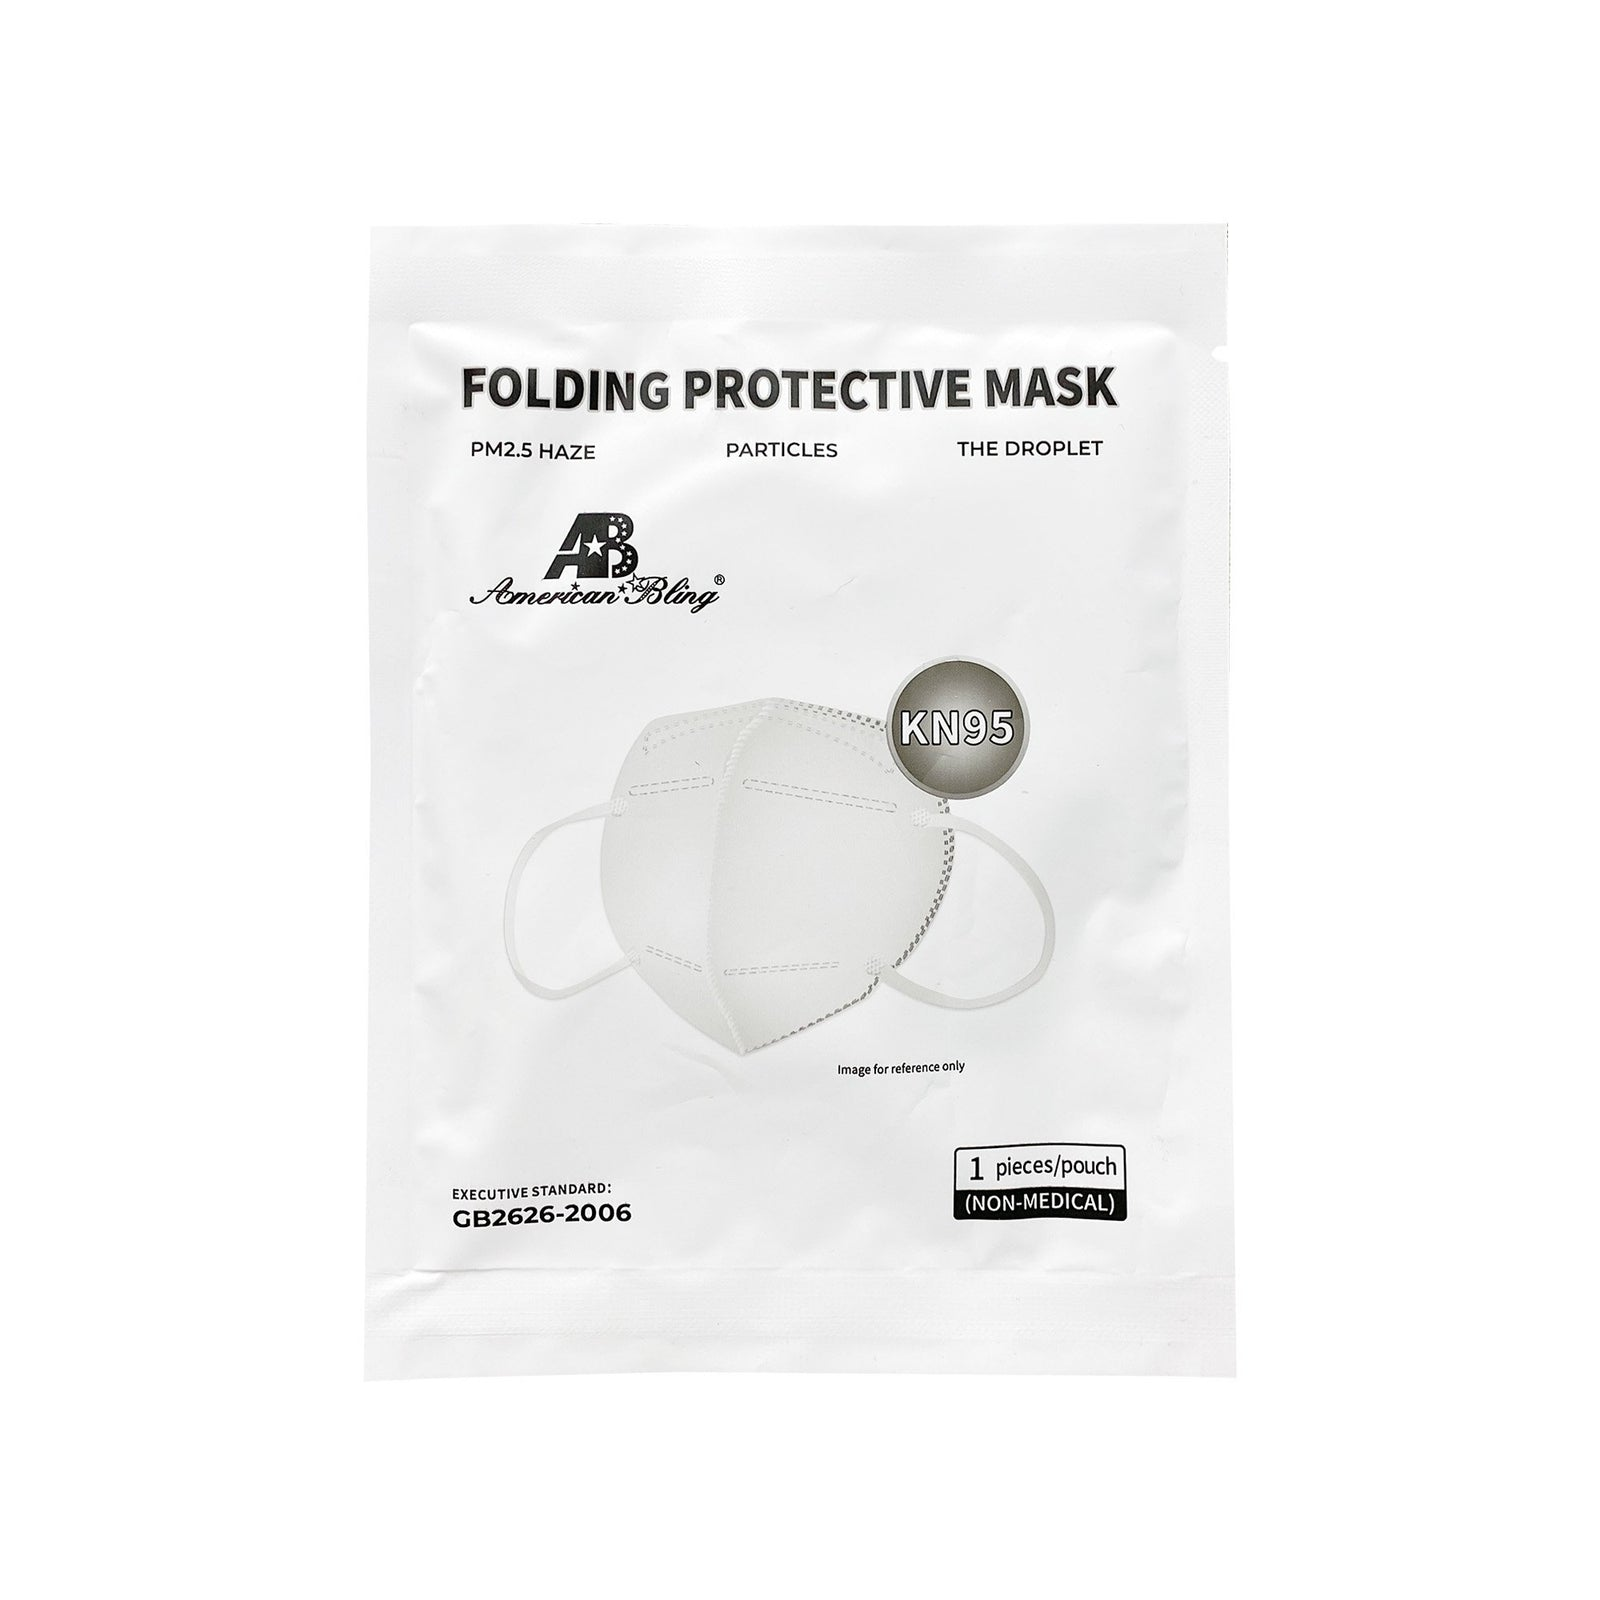 50 Pcs KN95 Disposable Folding Protective Cover Face Masks